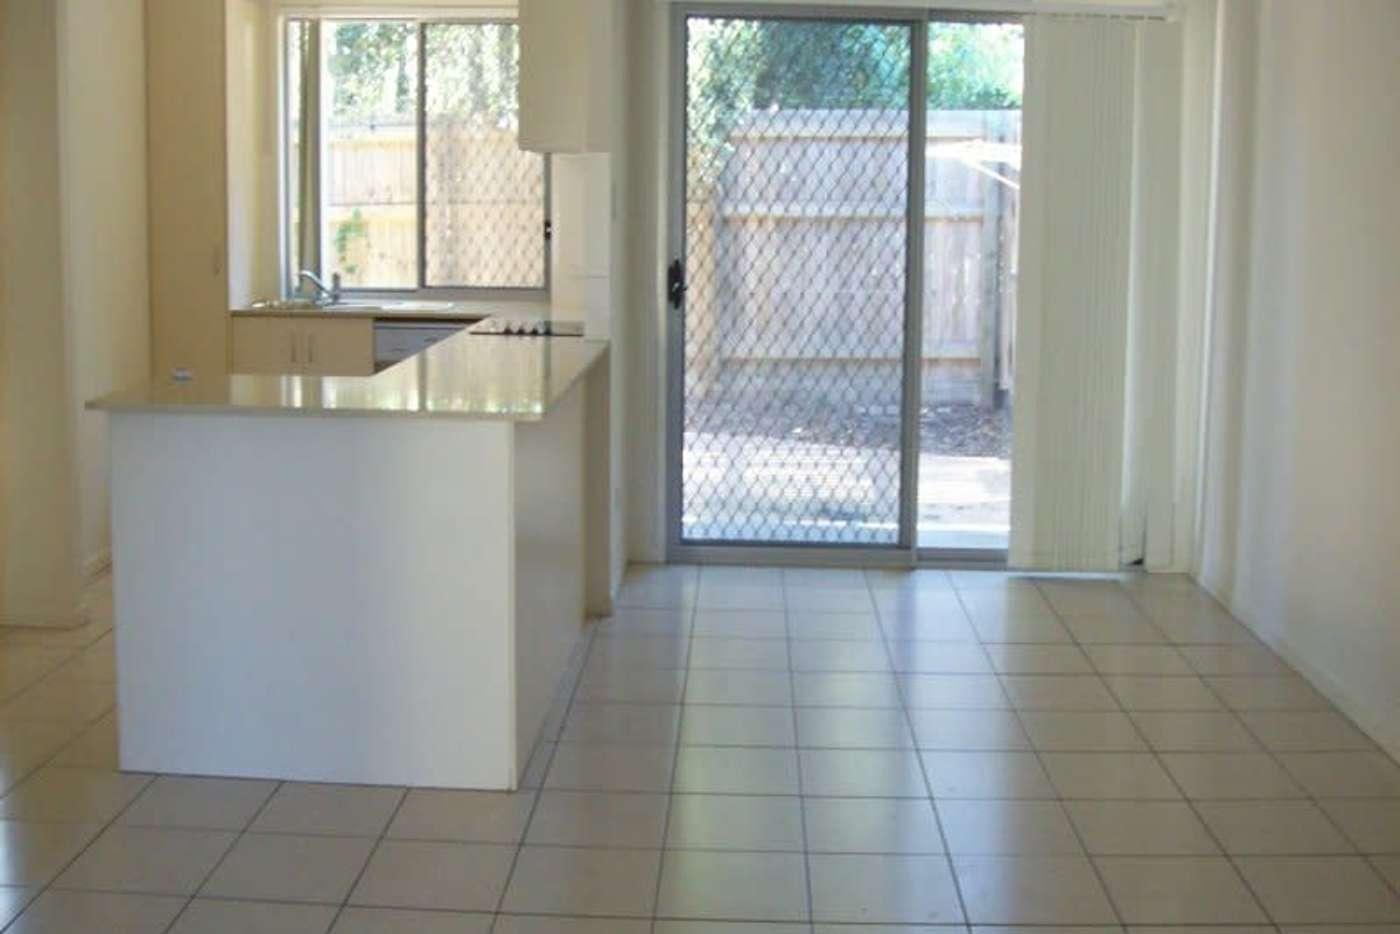 Sixth view of Homely townhouse listing, 116-136 Station Rd, Loganlea QLD 4131